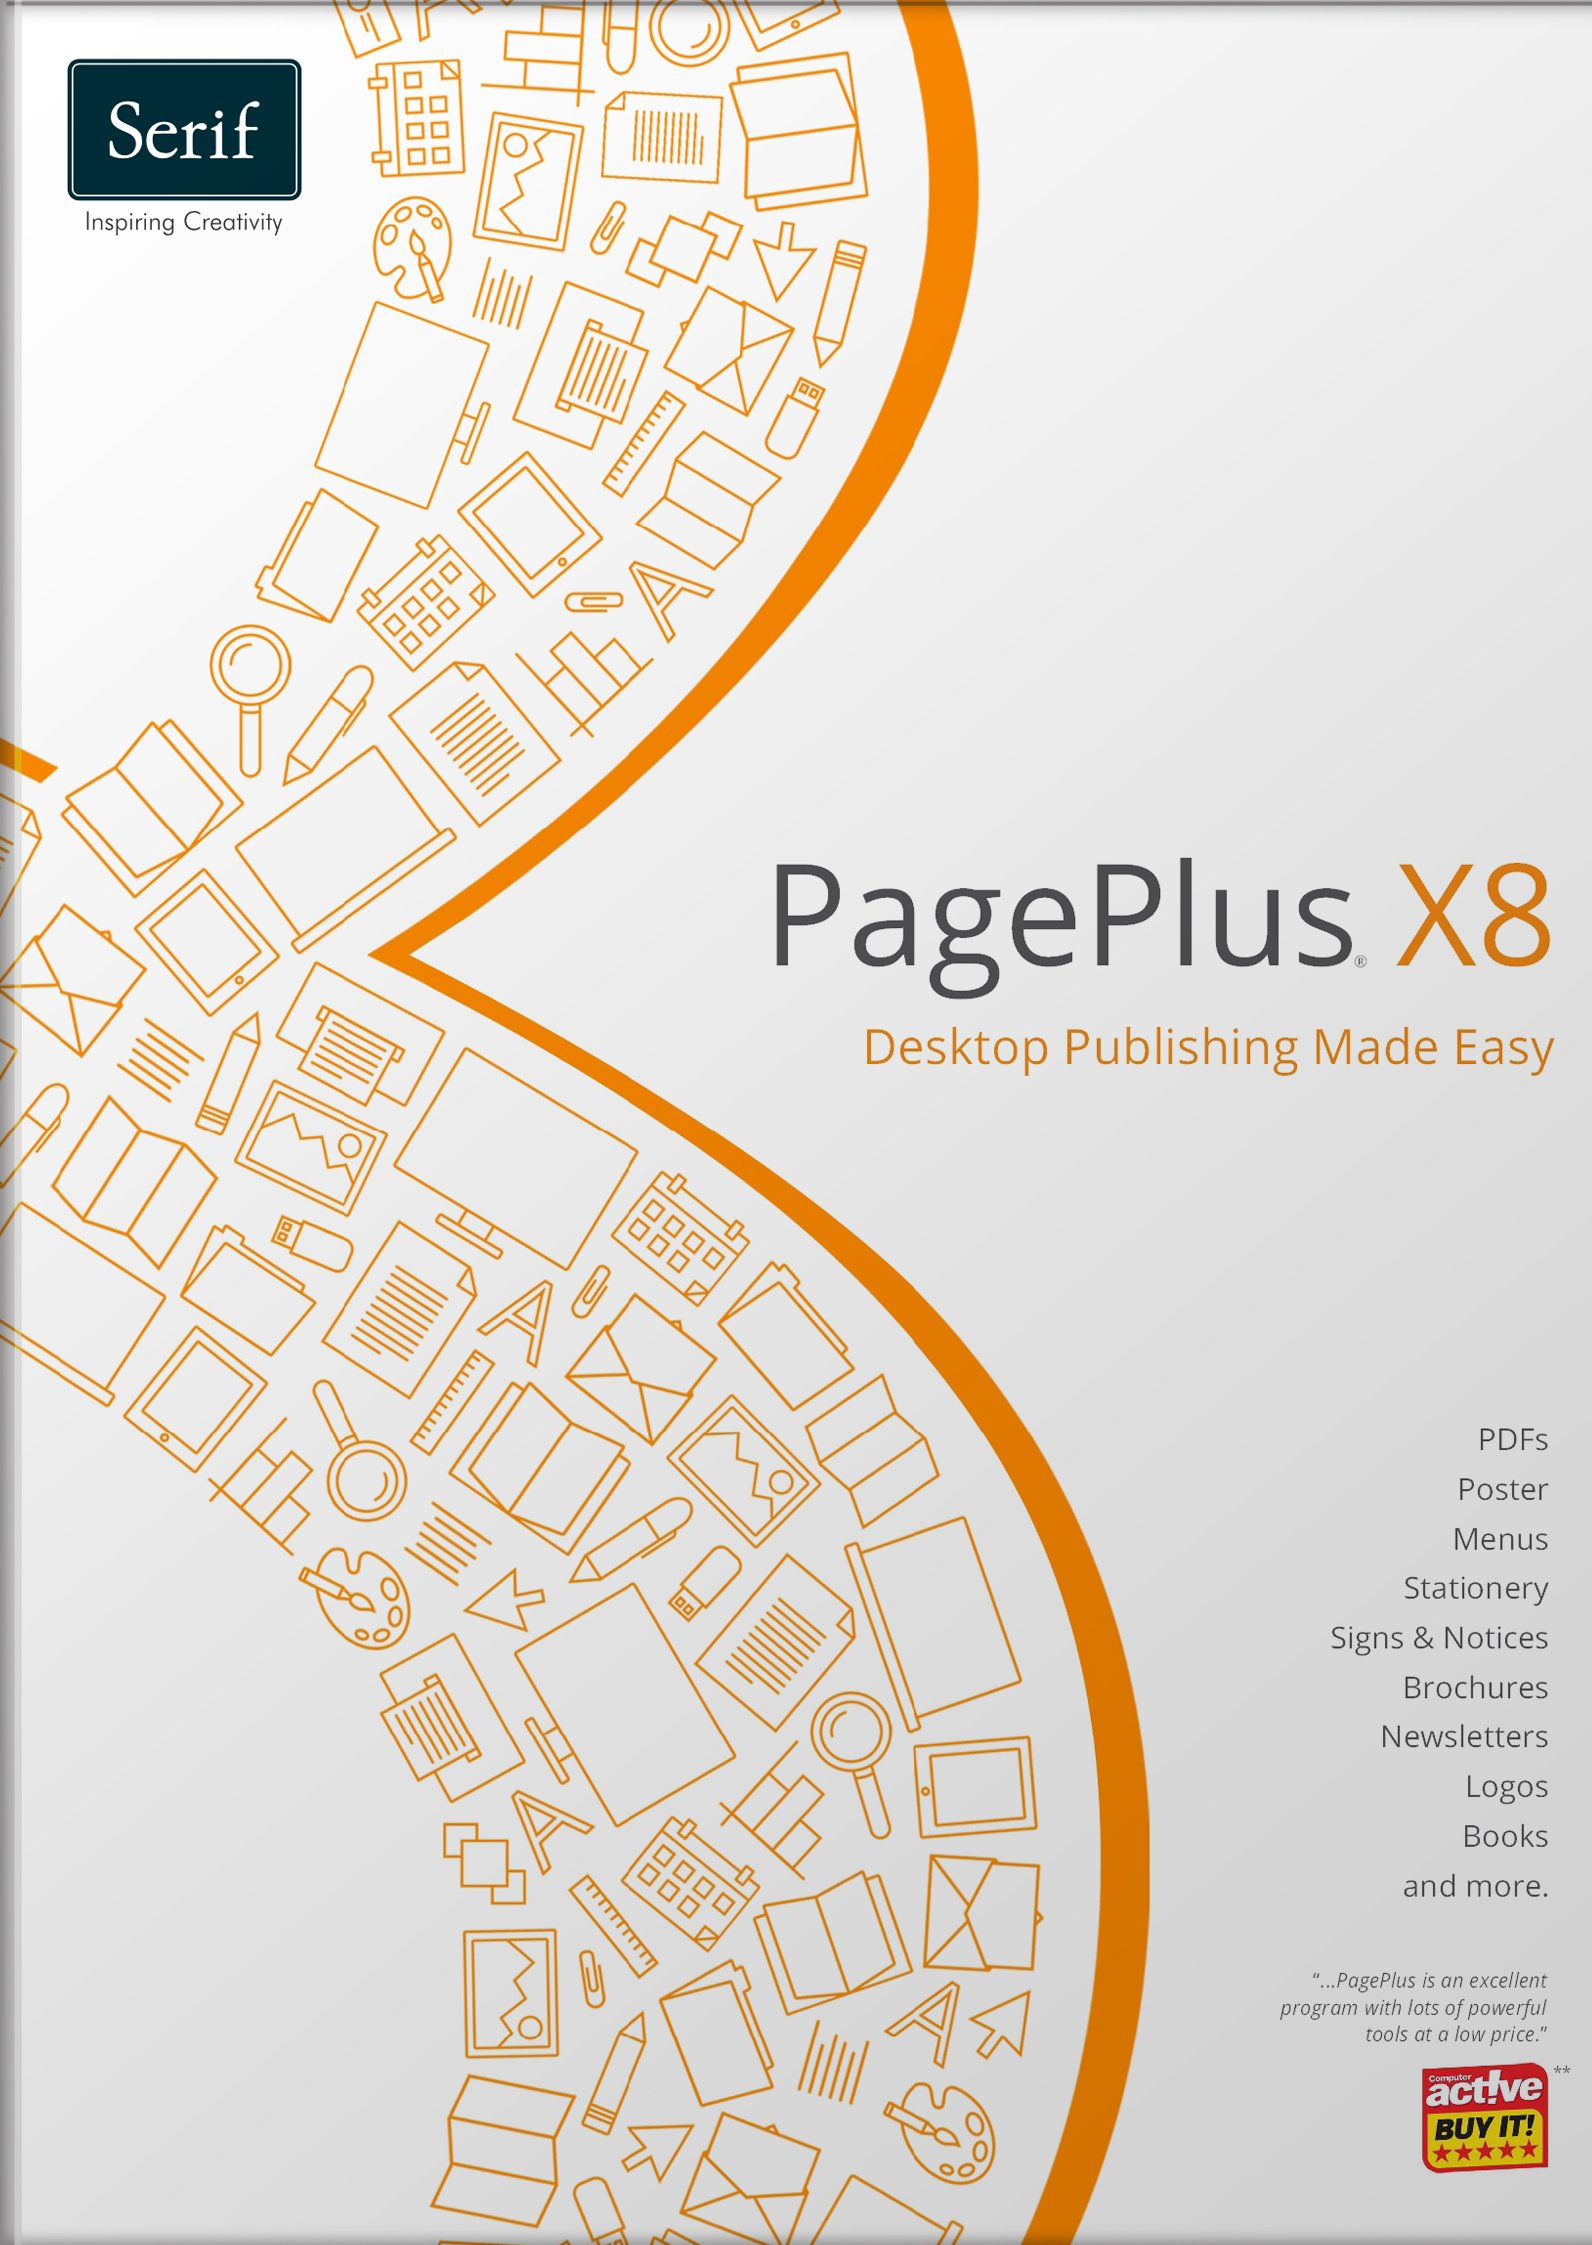 PagePlus X8 [Download] by Serif